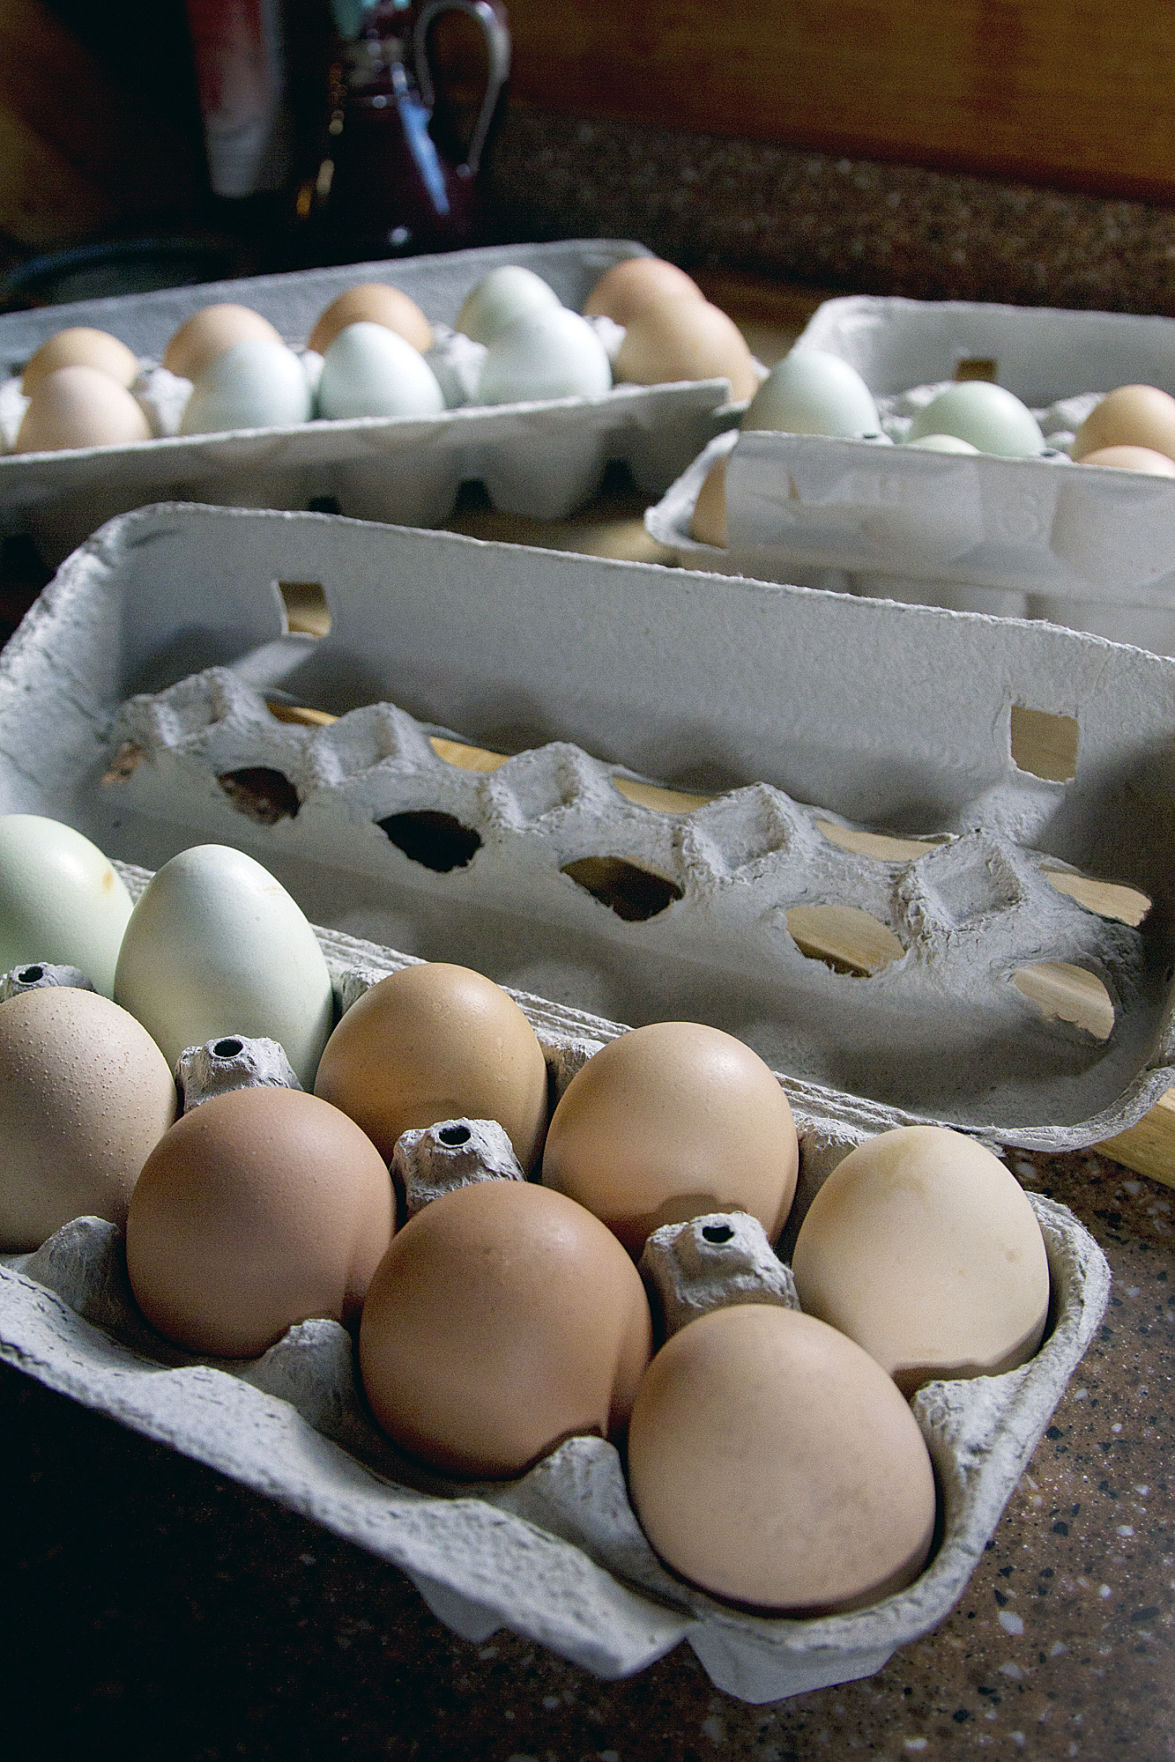 Backyard chickens offer unexpected benefits | News ...